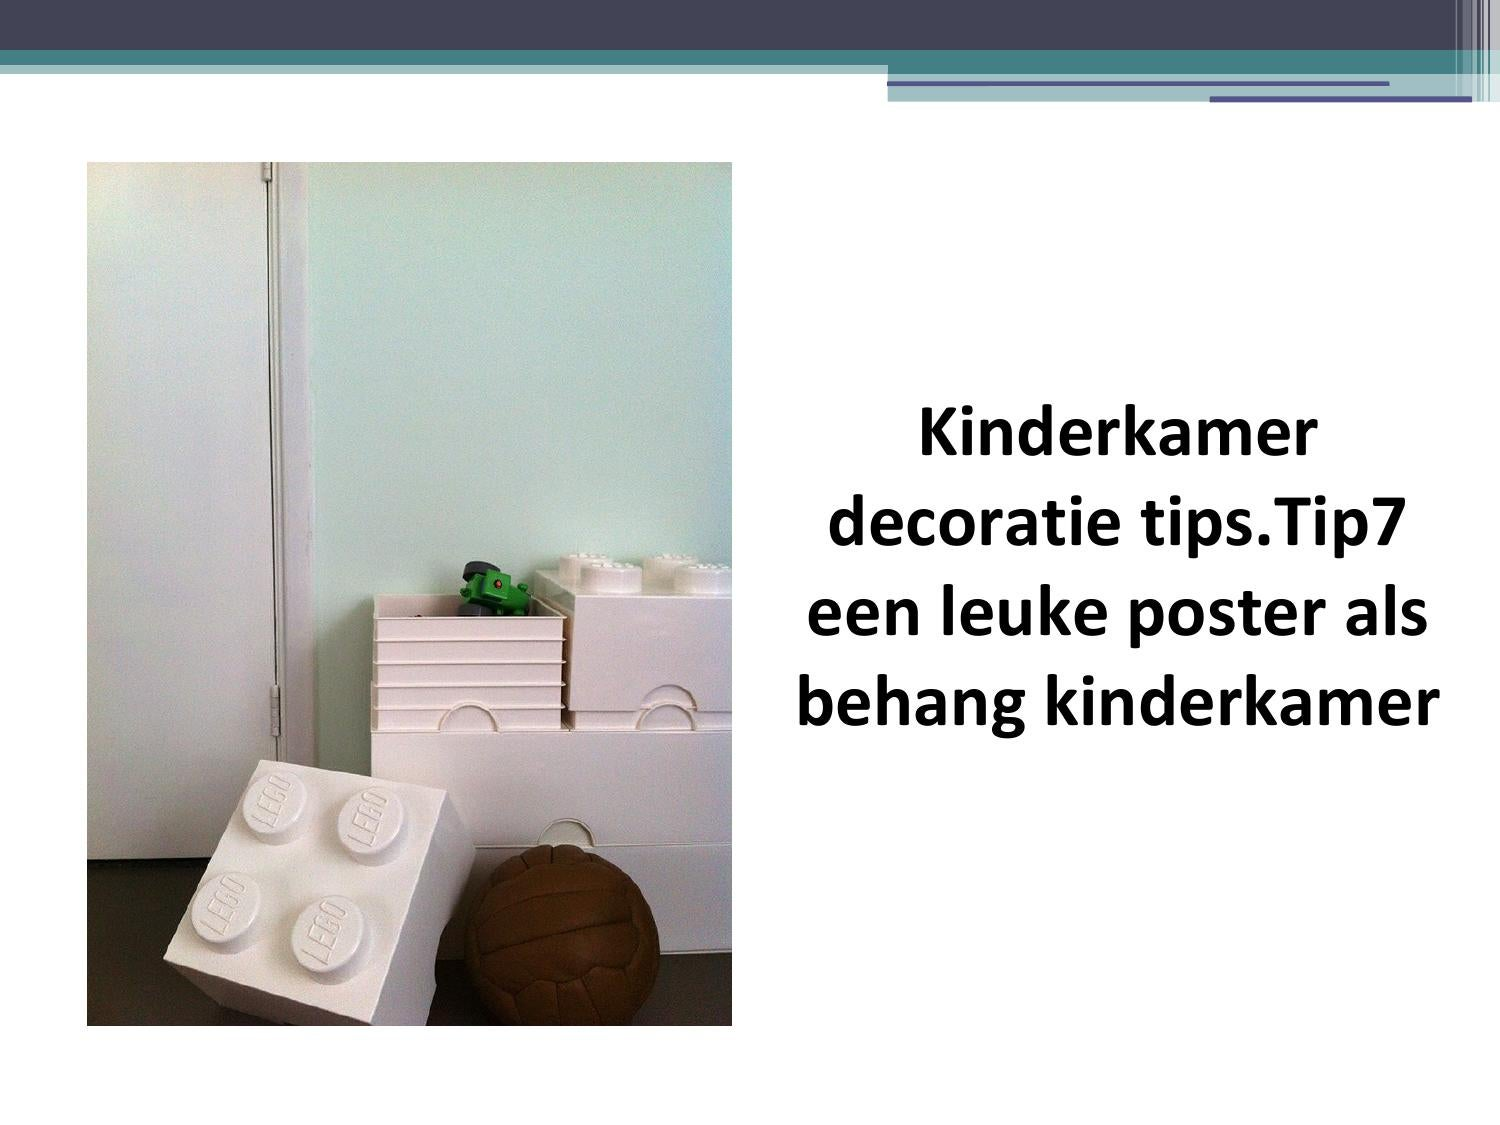 Kinderkamer decoratie tips Tip7 een leuke poster als behang kinderkamer by rowibliek04   issuu